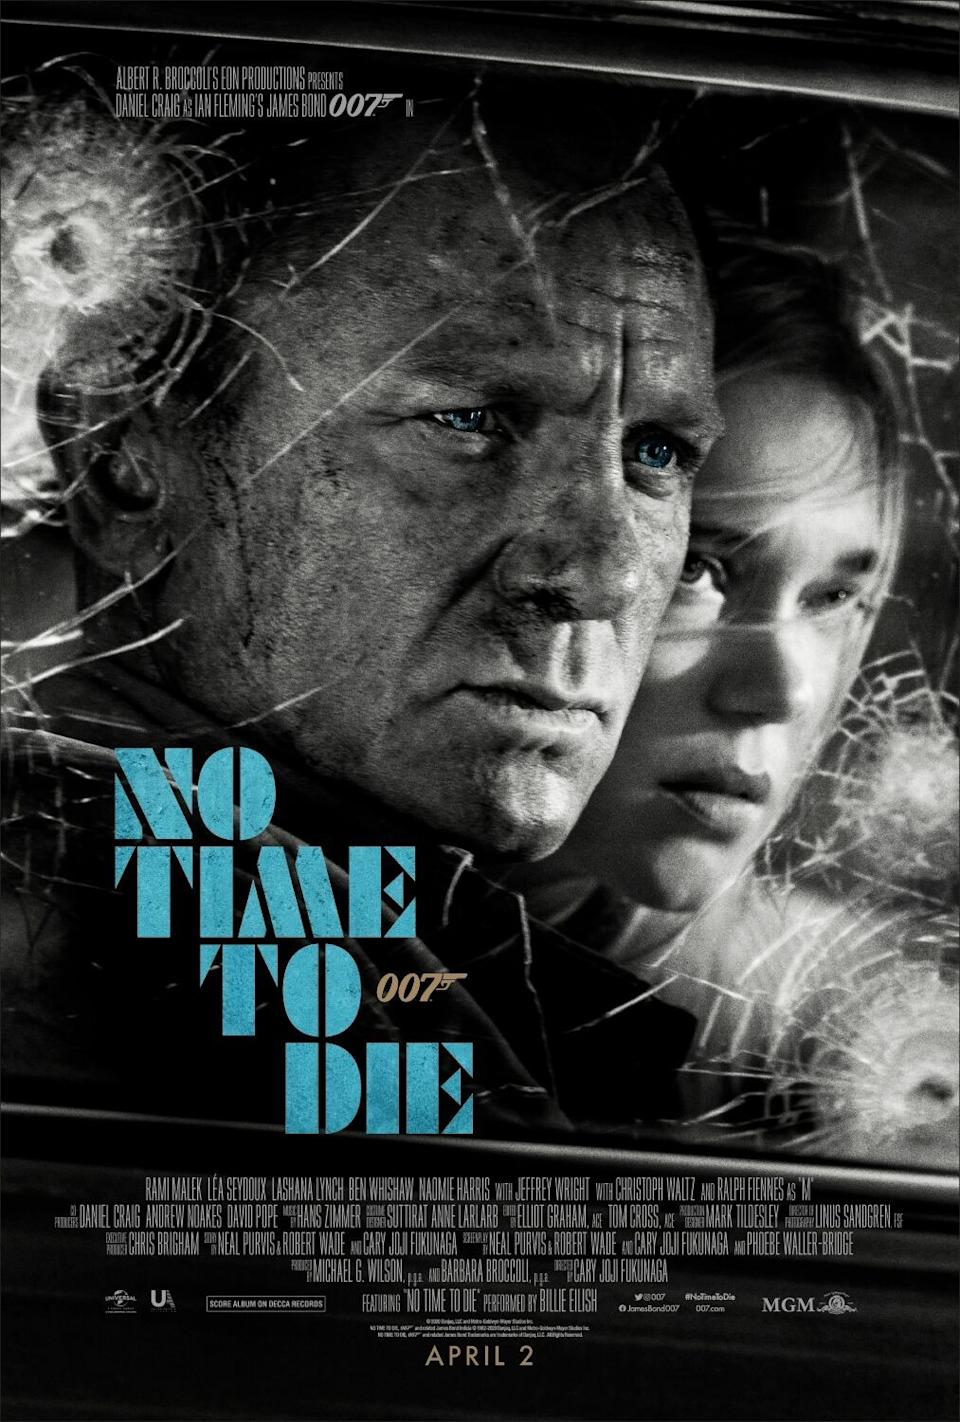 Daniel Craig's piercing blue eyes highlight this monochrome poster that bears the original April release date. (Universal/MGM/Eon)